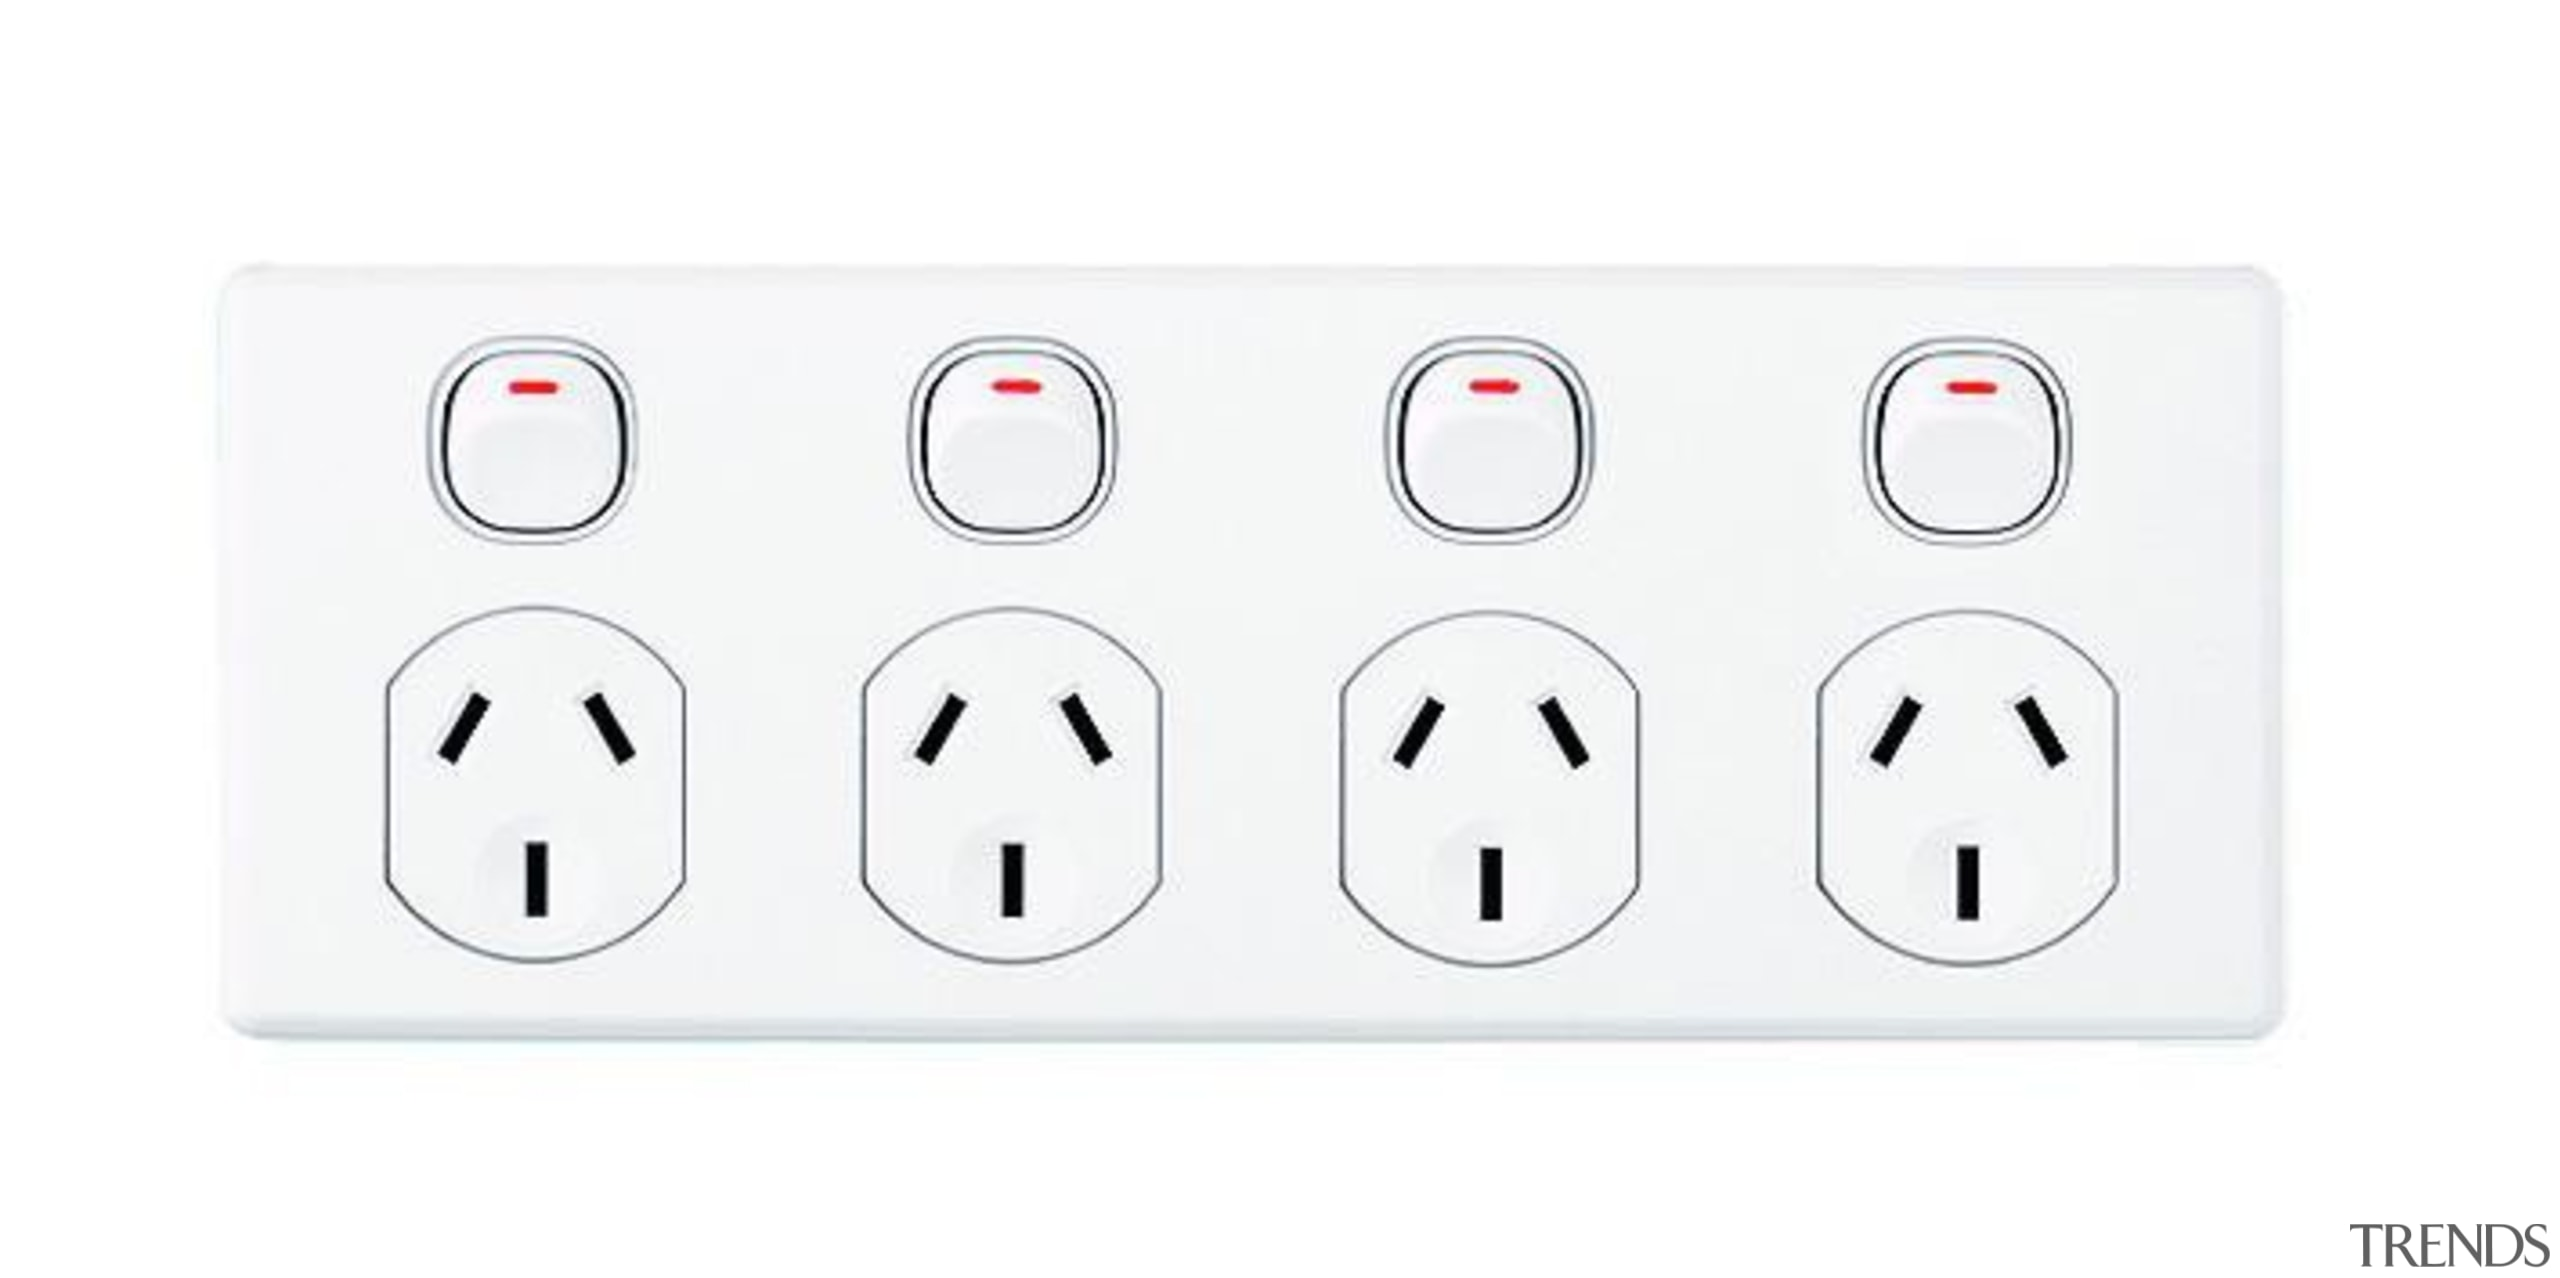 Classic C2000 quad socket White - C2015D4 - ac power plugs and socket outlets, technology, white